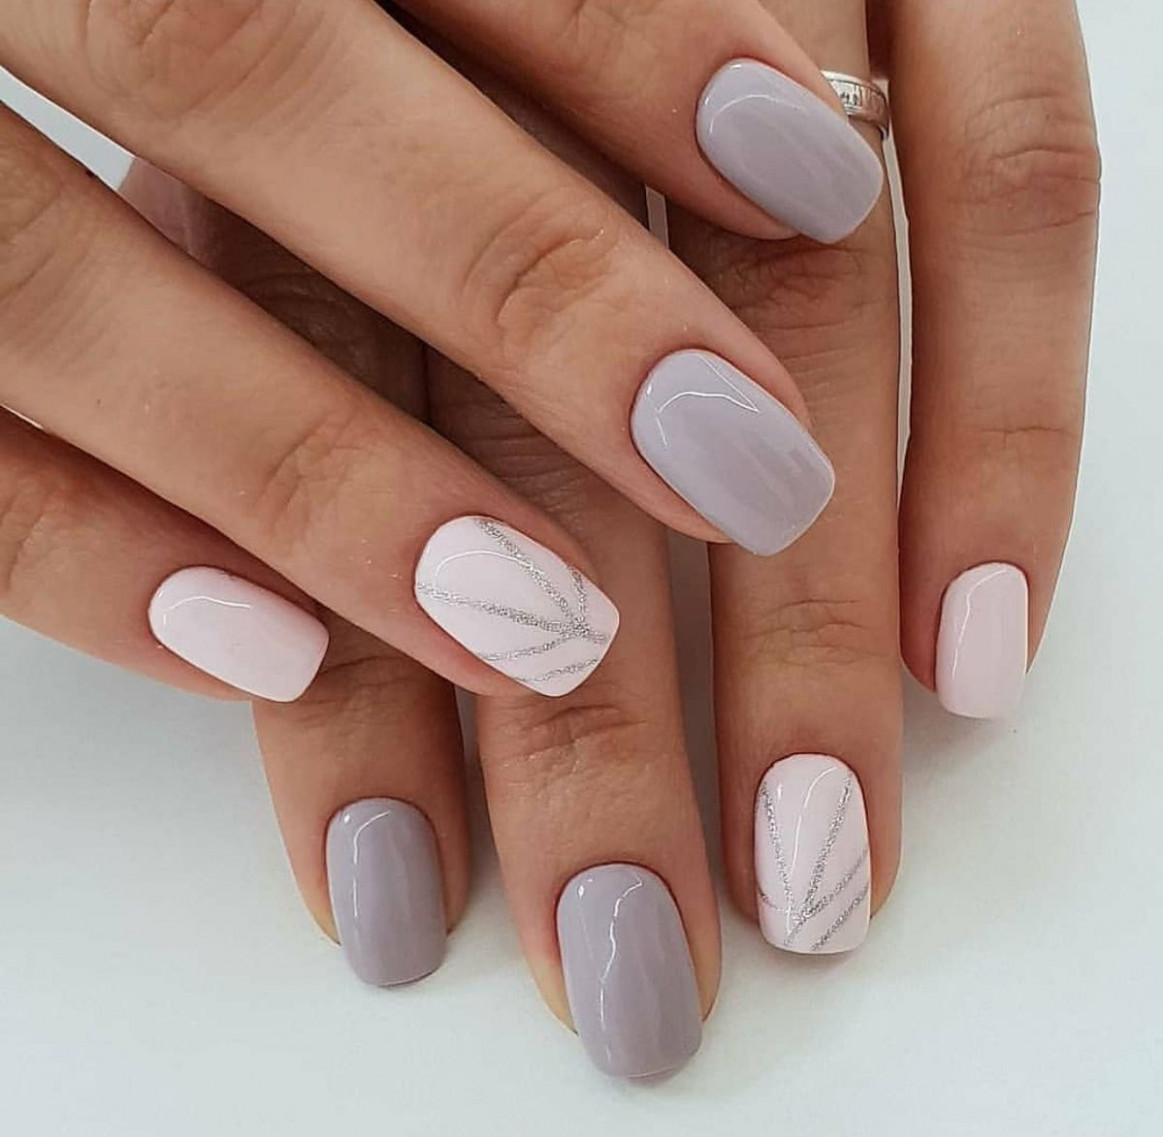 8 Simple Nail Design Ideas That Are Actually Easy  Short acrylic